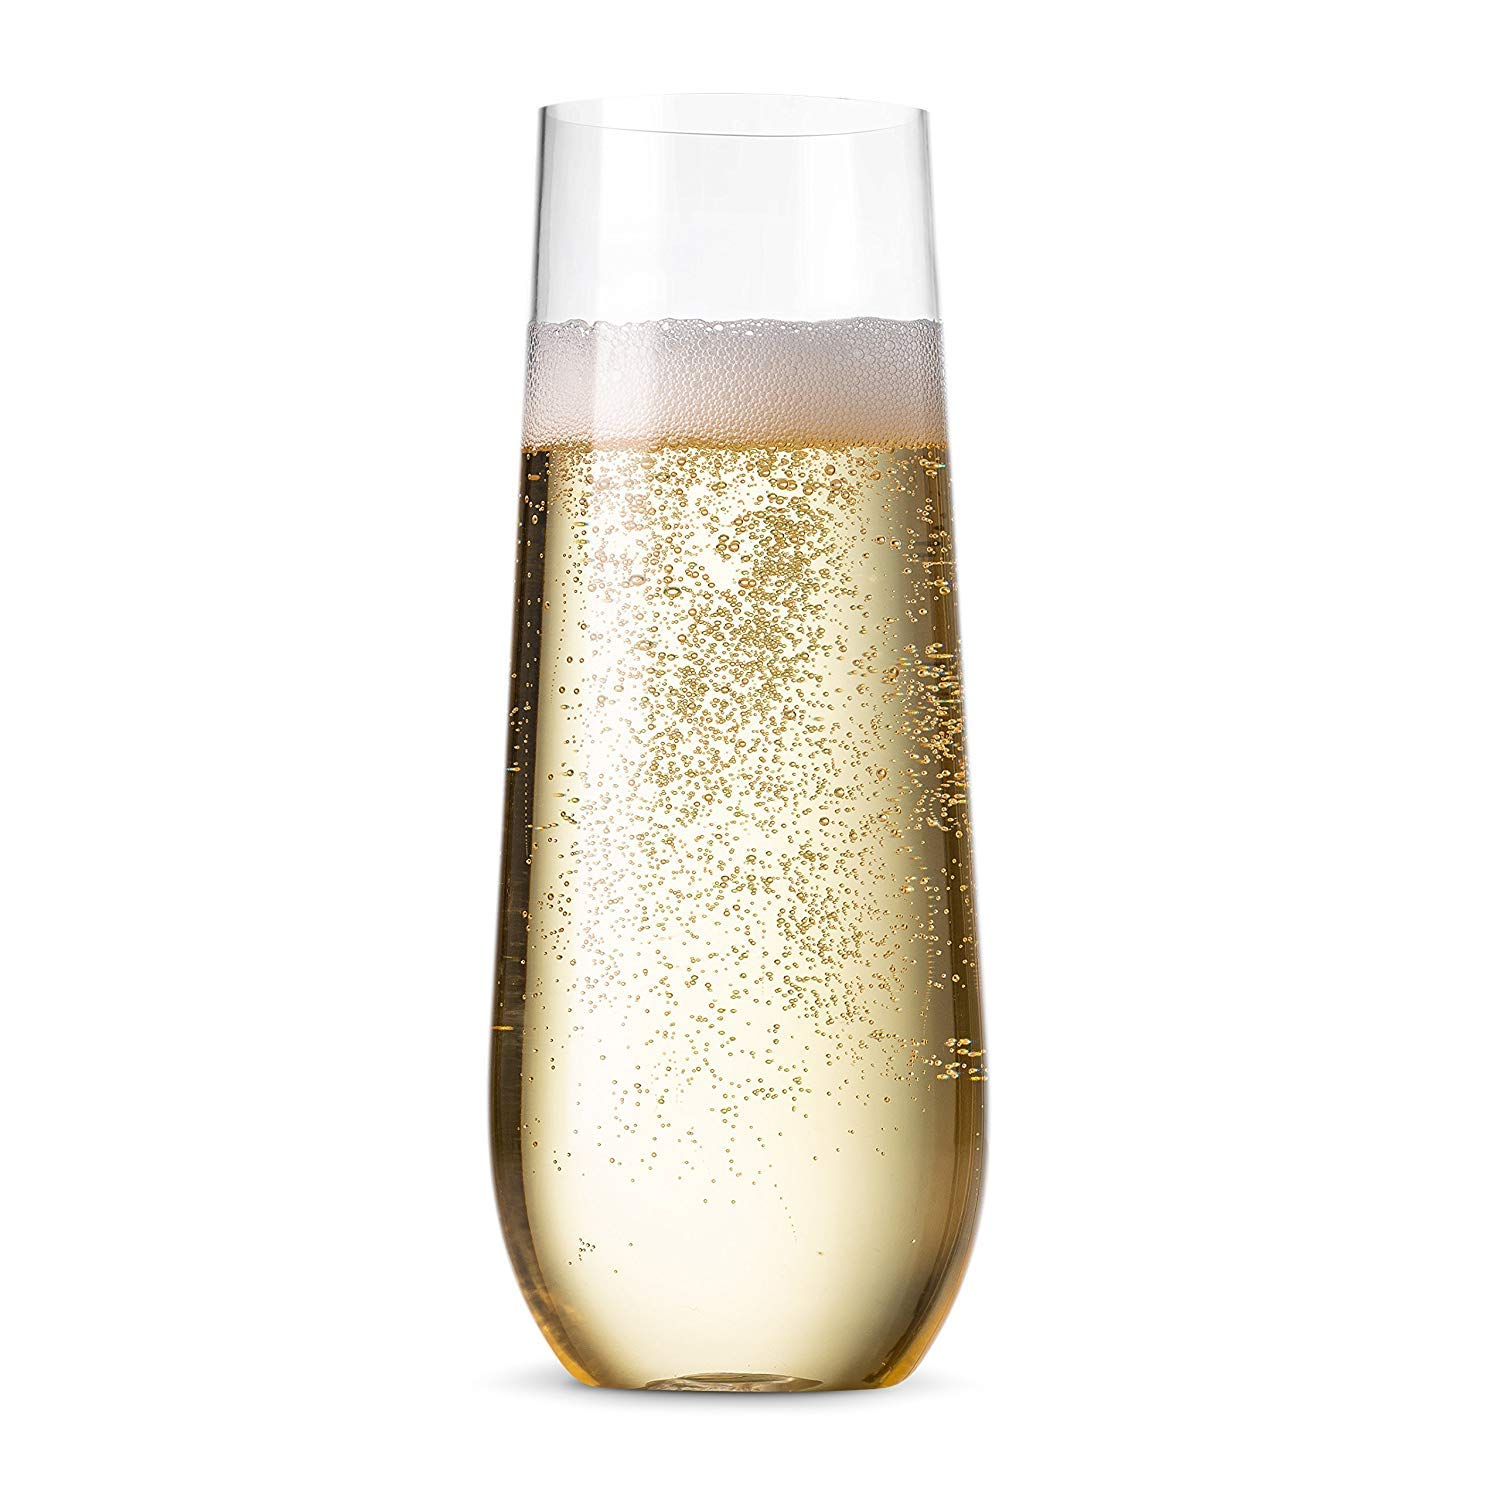 48-pcs Stemless Disposable Plastic Champagne Flutes 9oz Clear Toasting Glasses • Shatterproof • Recyclable • BPA-Free •